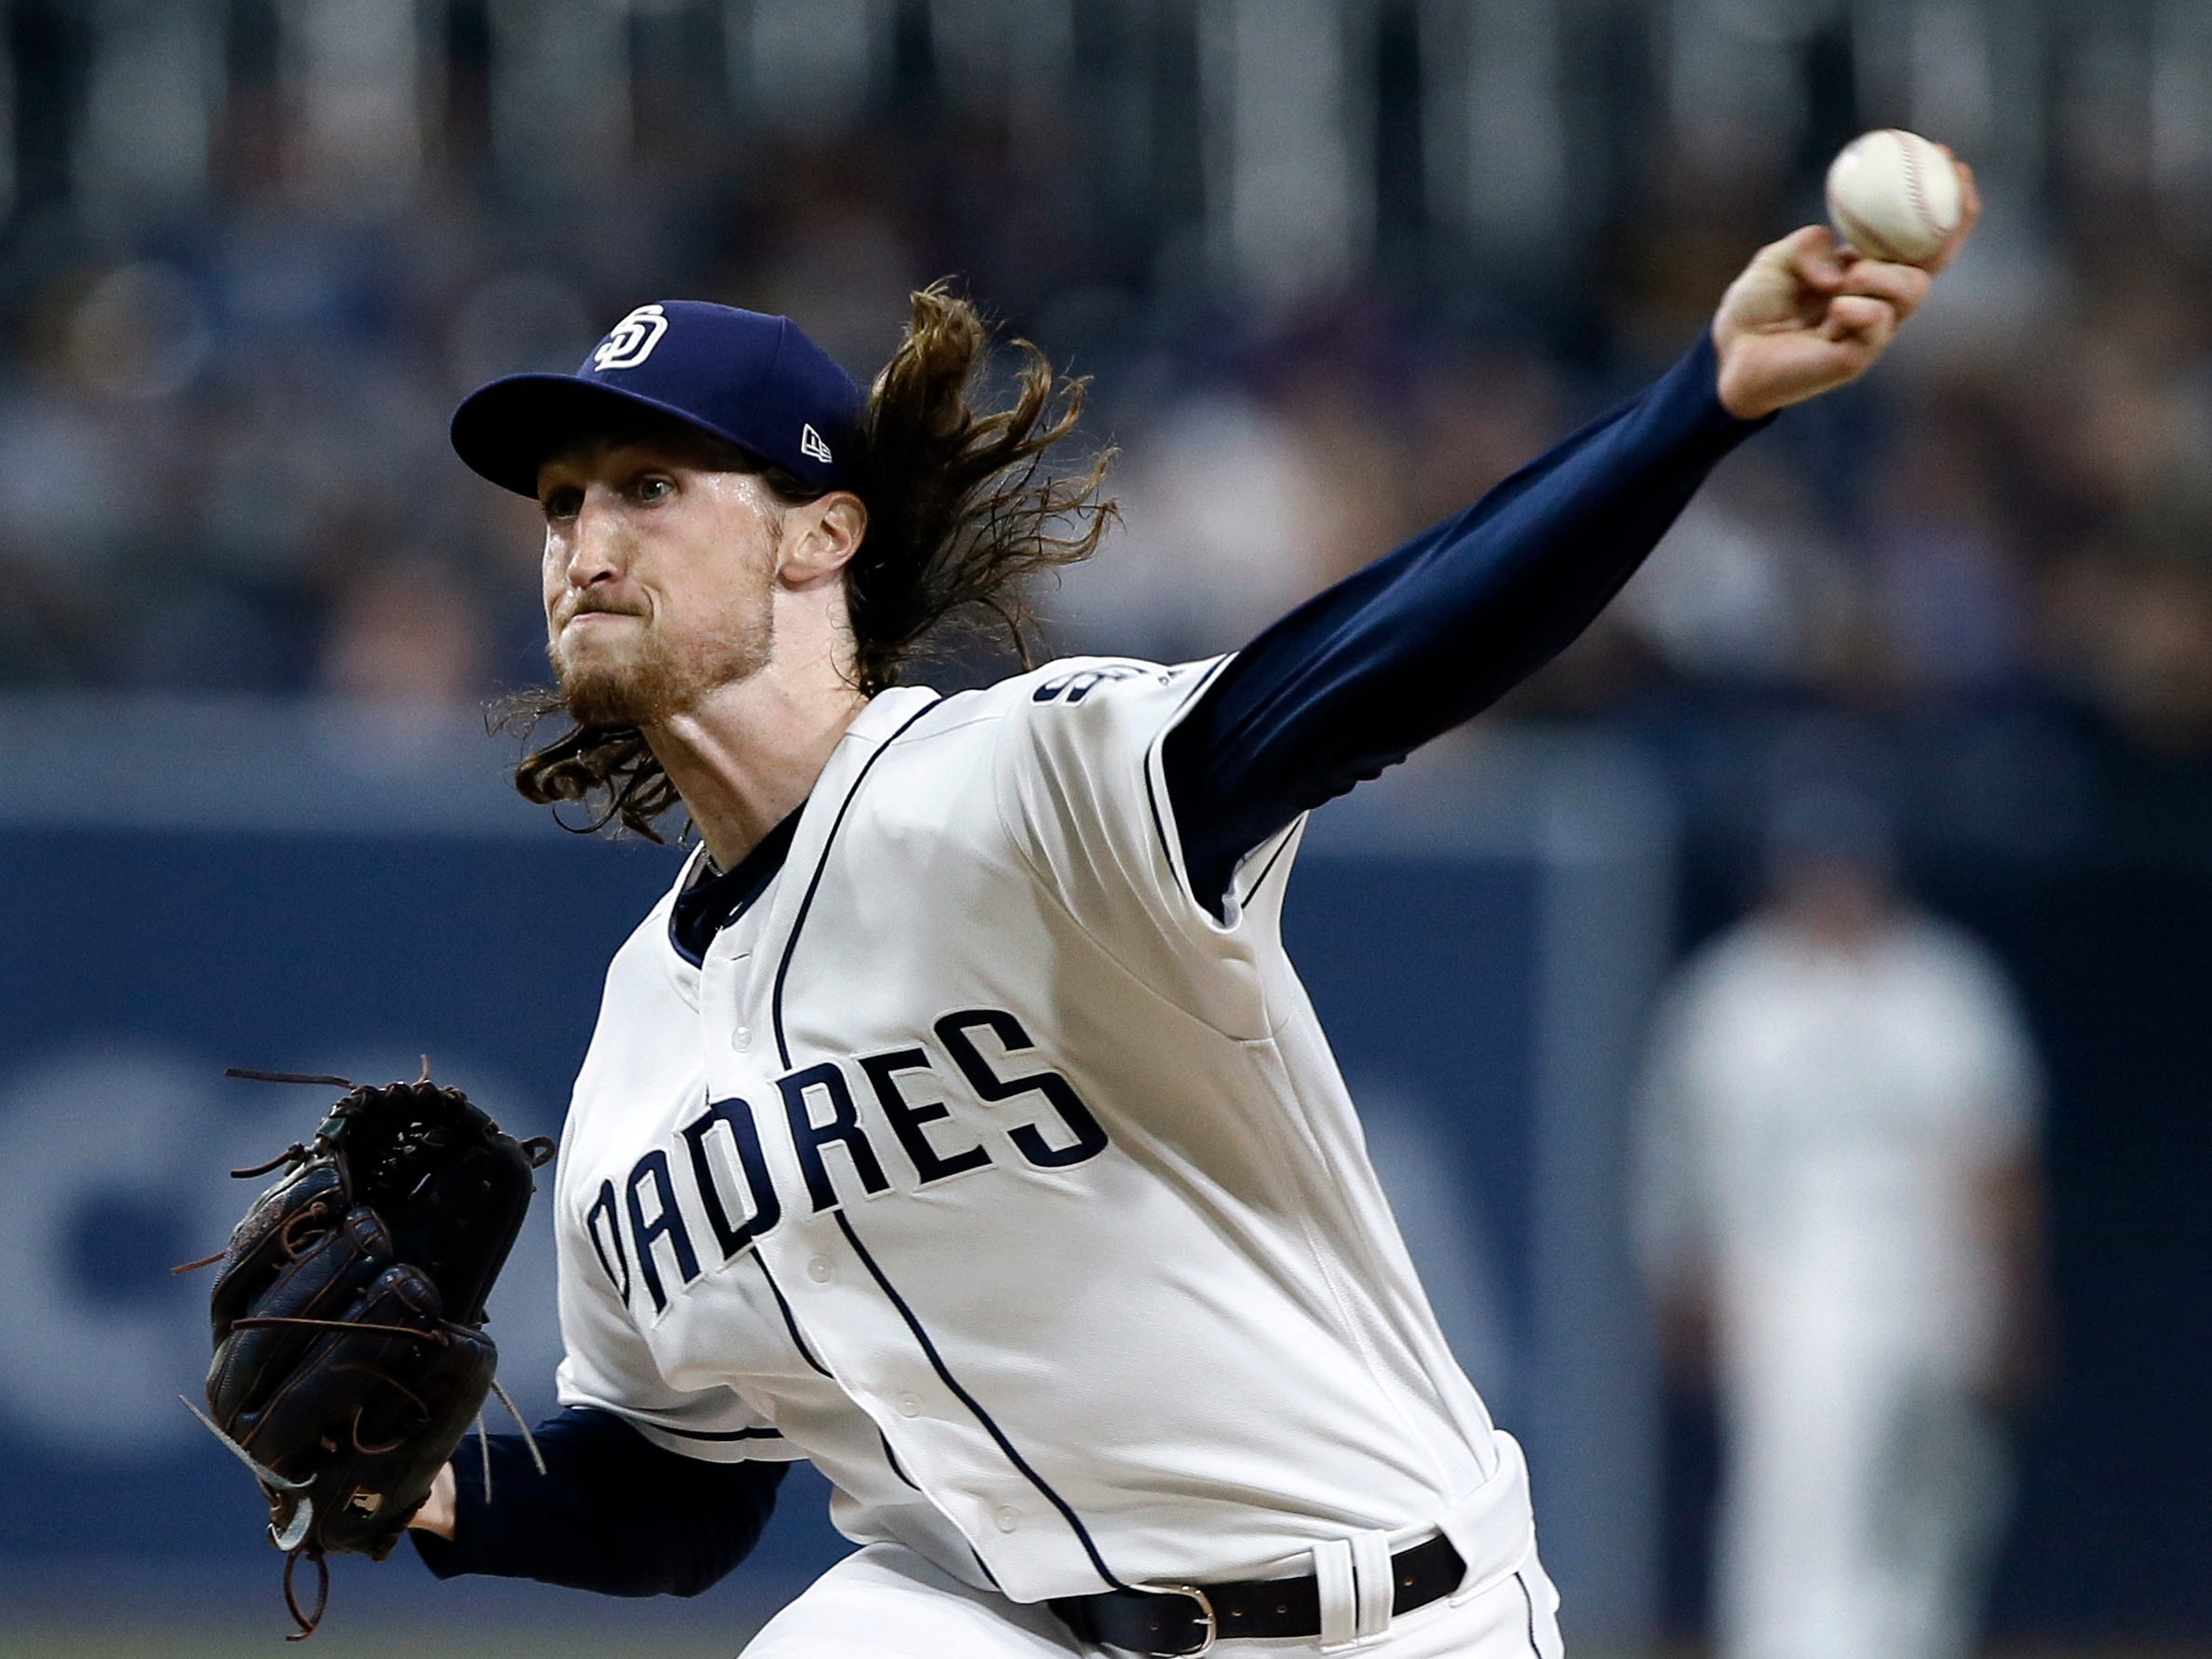 San Diego Padres relief pitcher Matt Strahm delivers to an Arizona Diamondbacks batter during the first inning of a baseball game in San Diego, Monday, April 1, 2019. (AP Photo/Alex Gallardo)